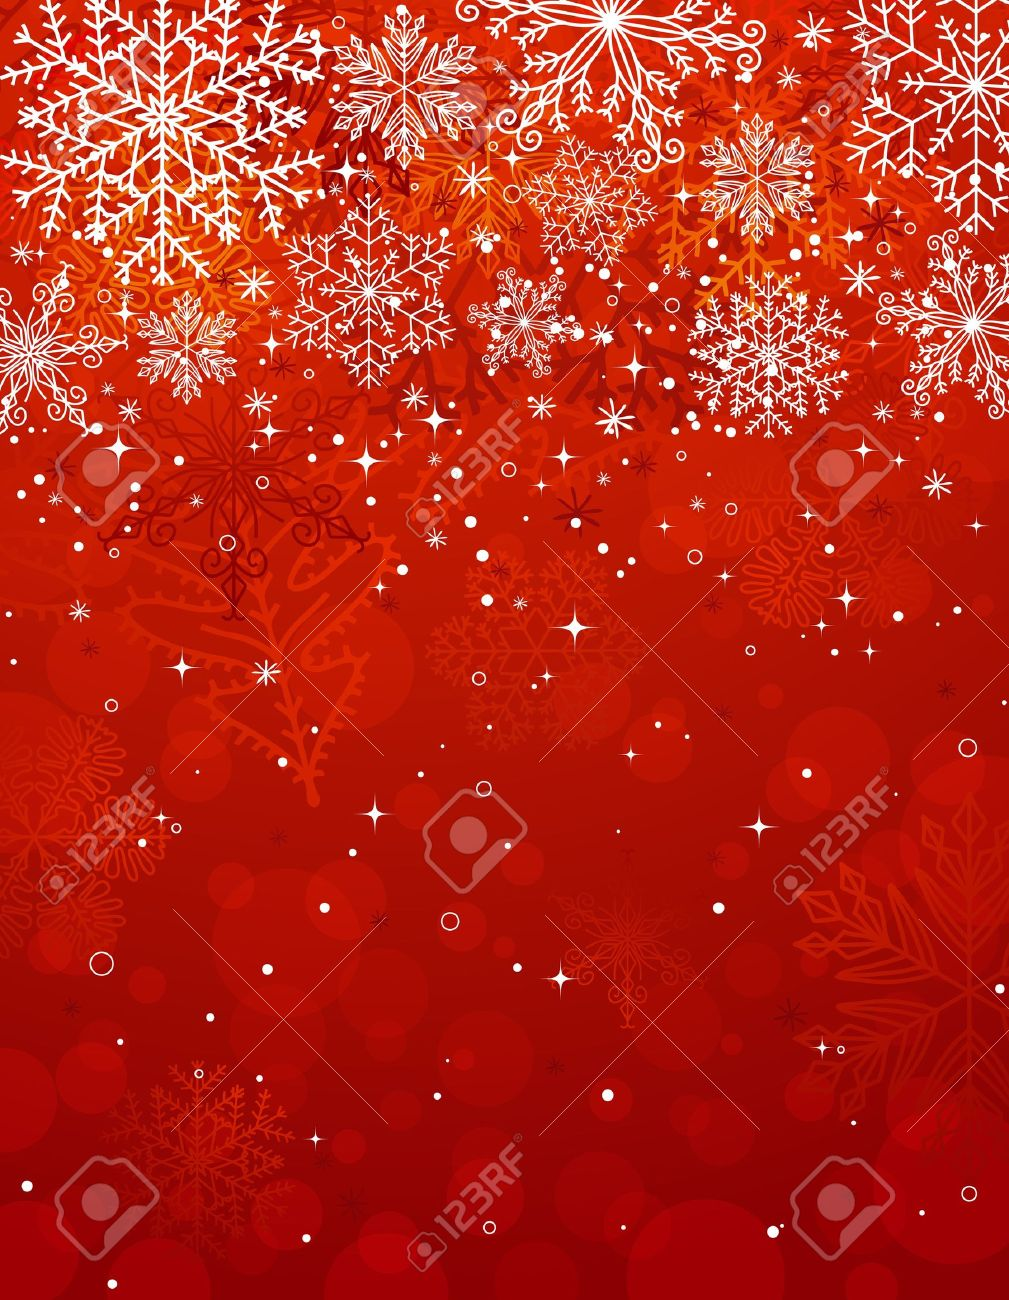 Red Christmas Background.Red Christmas Background With Snowflakes